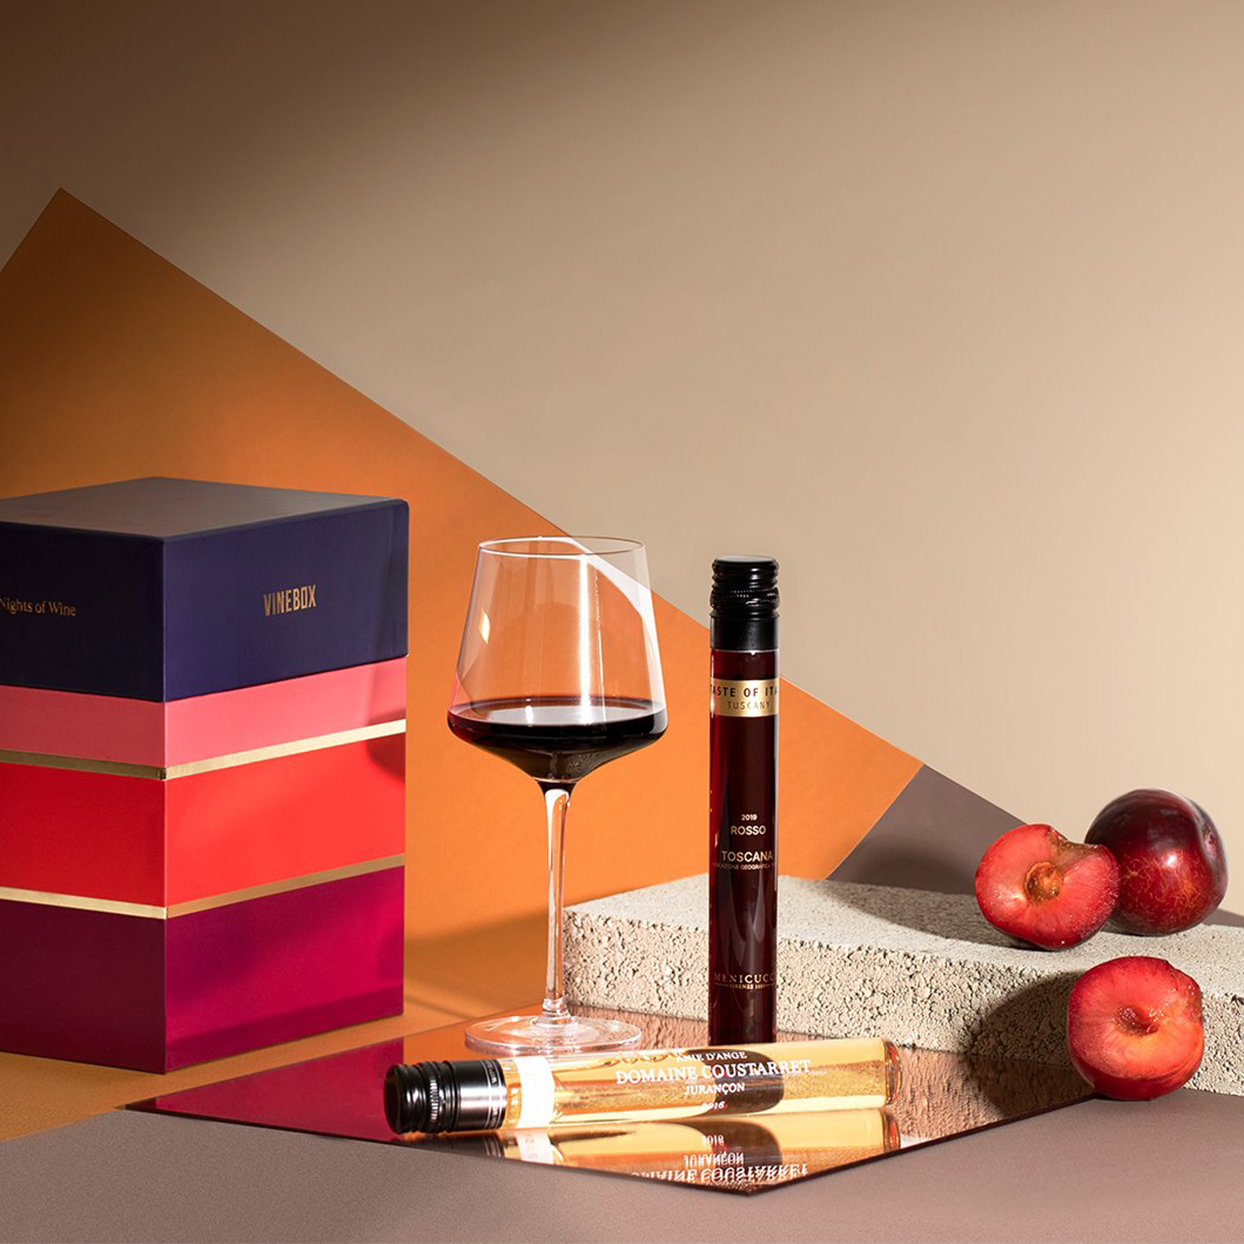 """Turns out a box of wine can make a really chic gift. Vinebox has a """"Twelve Nights of Wine"""" wine advent calendar with 12 individual glasses of reds and whites to enjoy throughout December. Each comes in a fancy-looking vial you'll want to show off.Related: The Best Shower Wine Glass Holders for $15 or Less"""